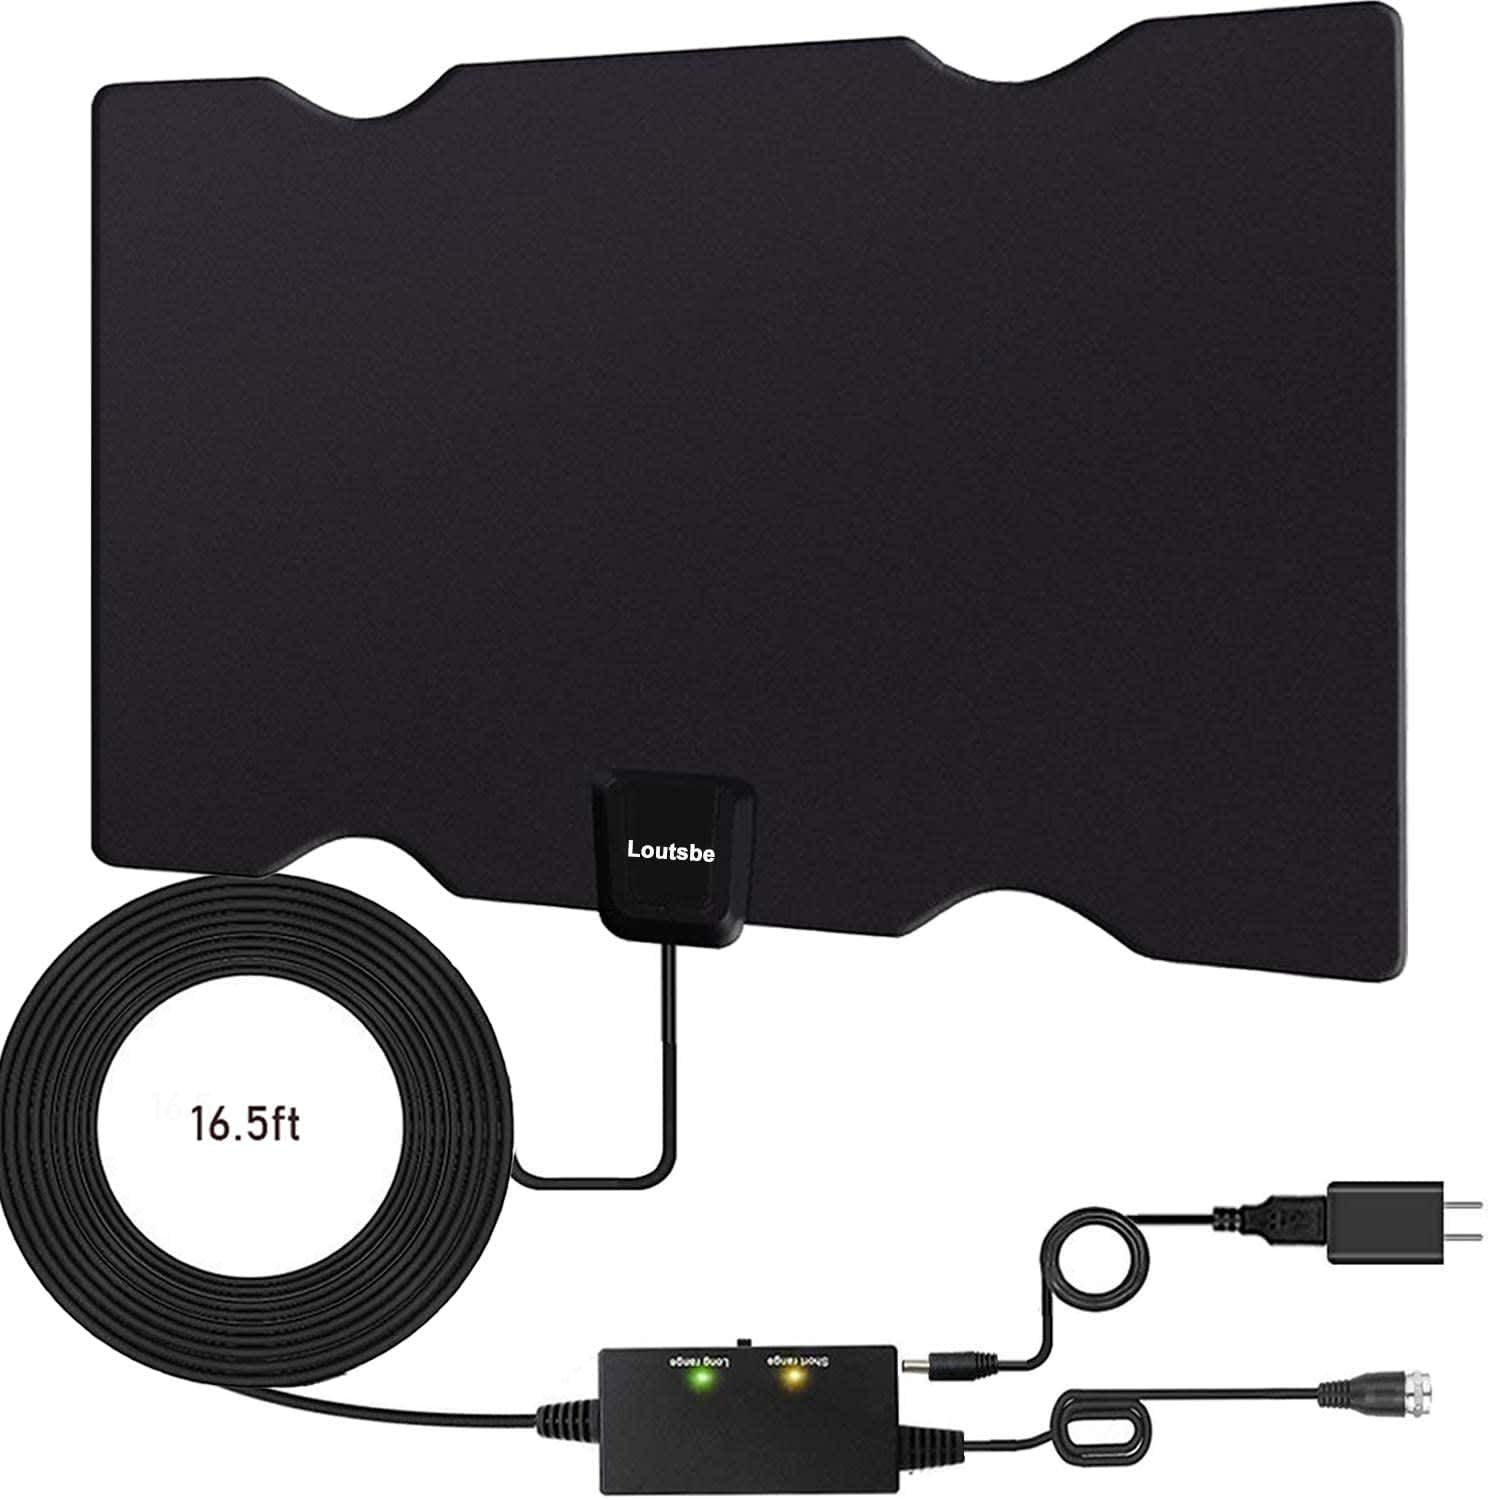 Loutsbe 80-Mile Amplified HDTV Antenna